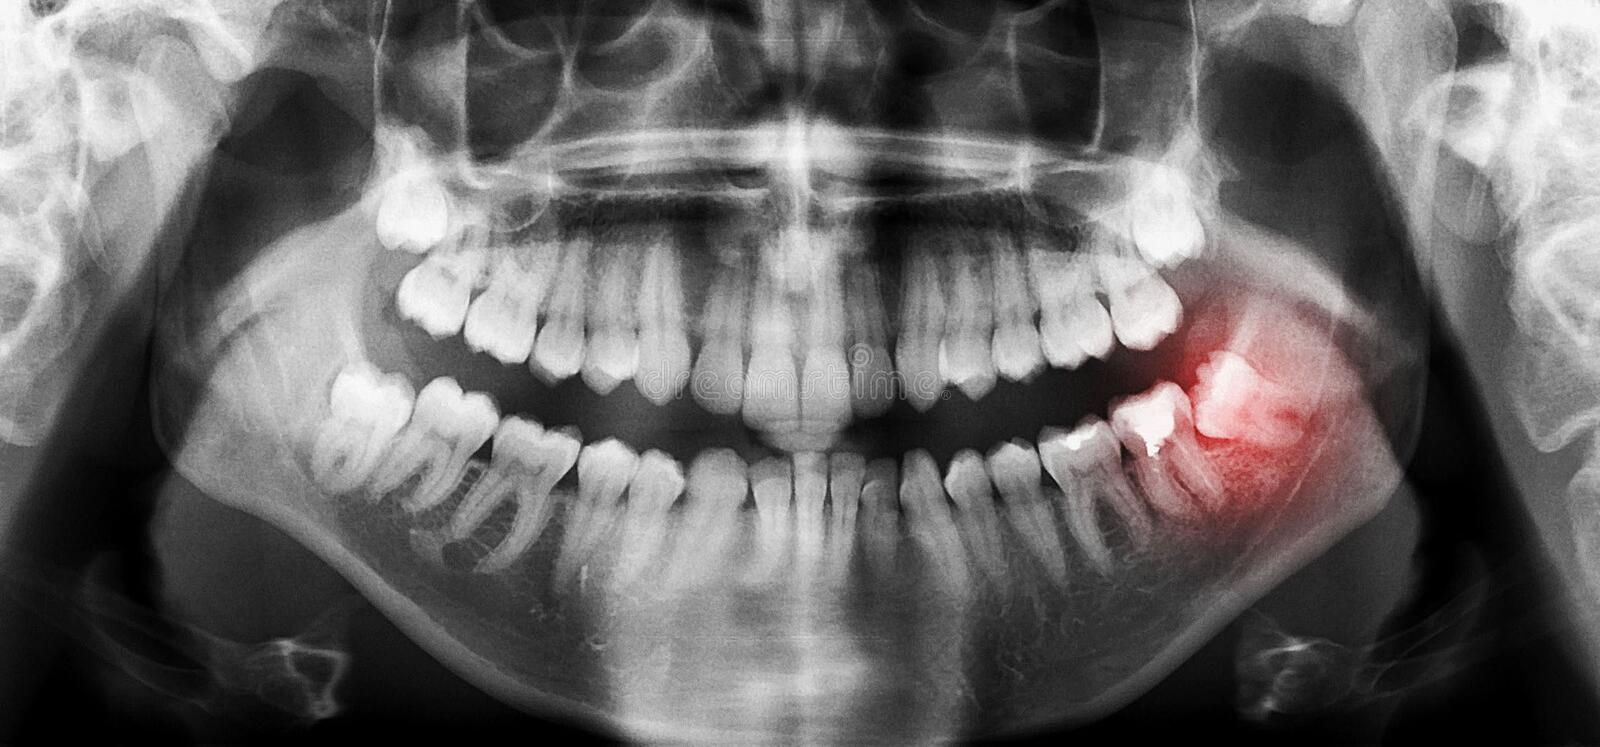 Dental teeth x-ray panoramic scan with skewed wisdom tooth royalty free stock image